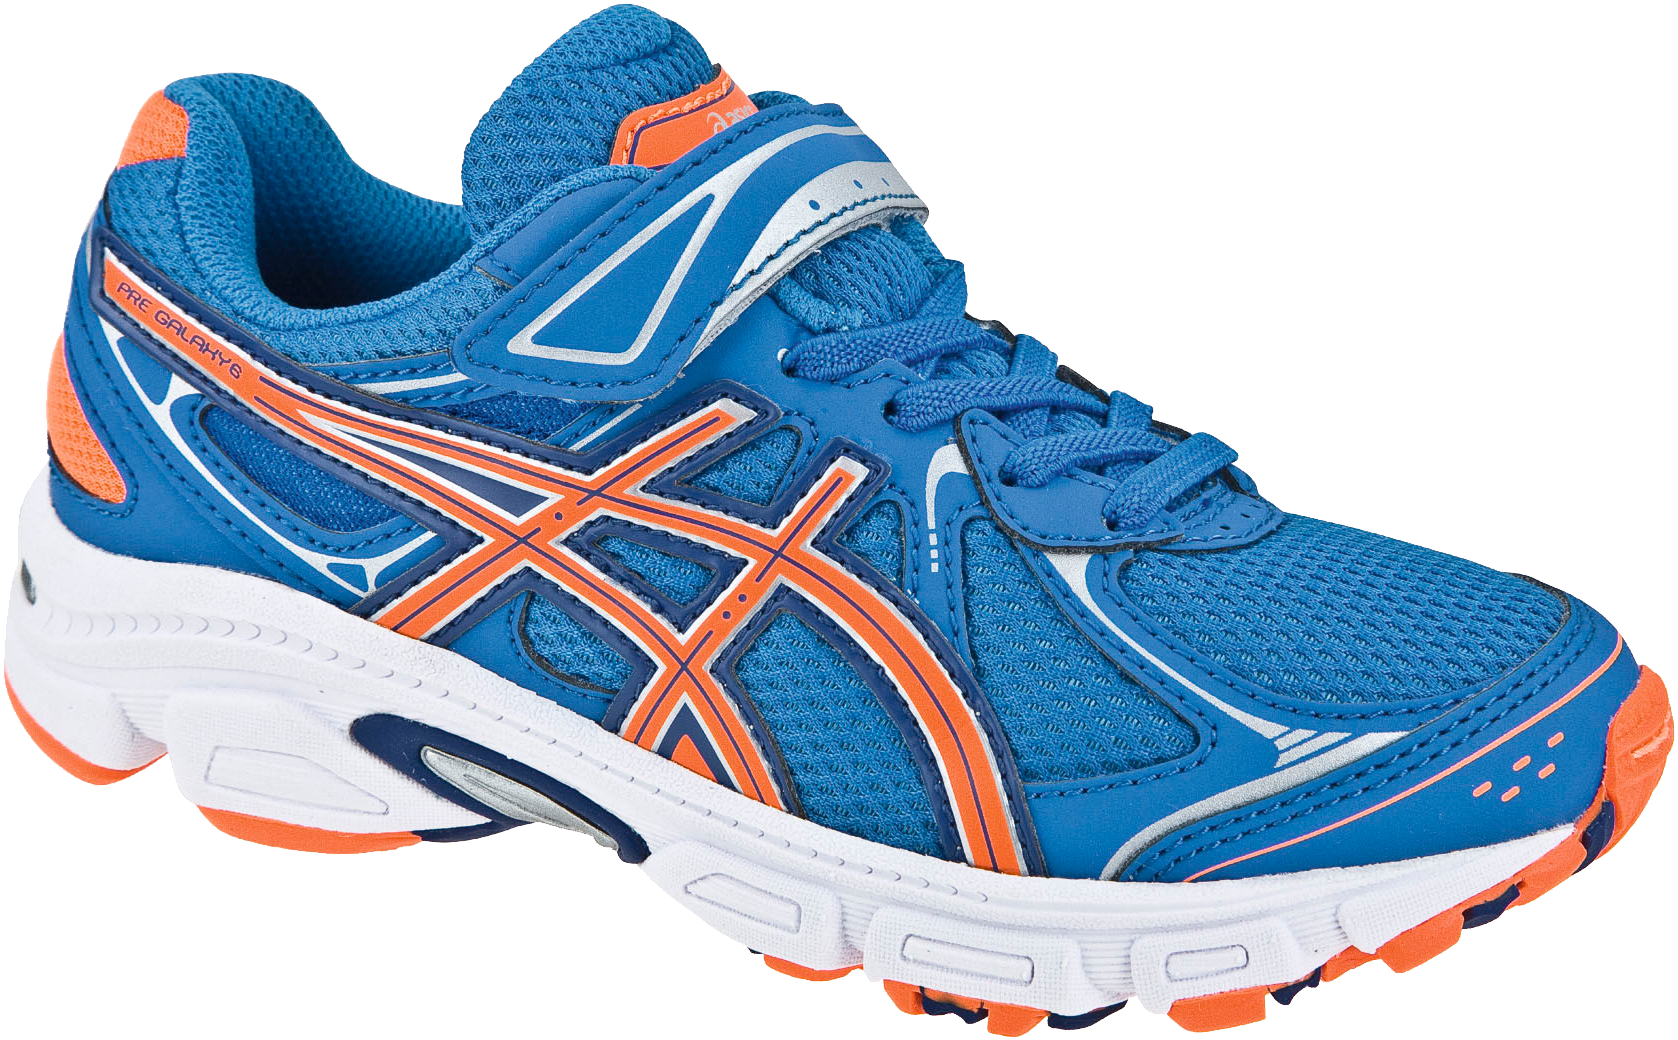 Best Running Shoes For Arch Support